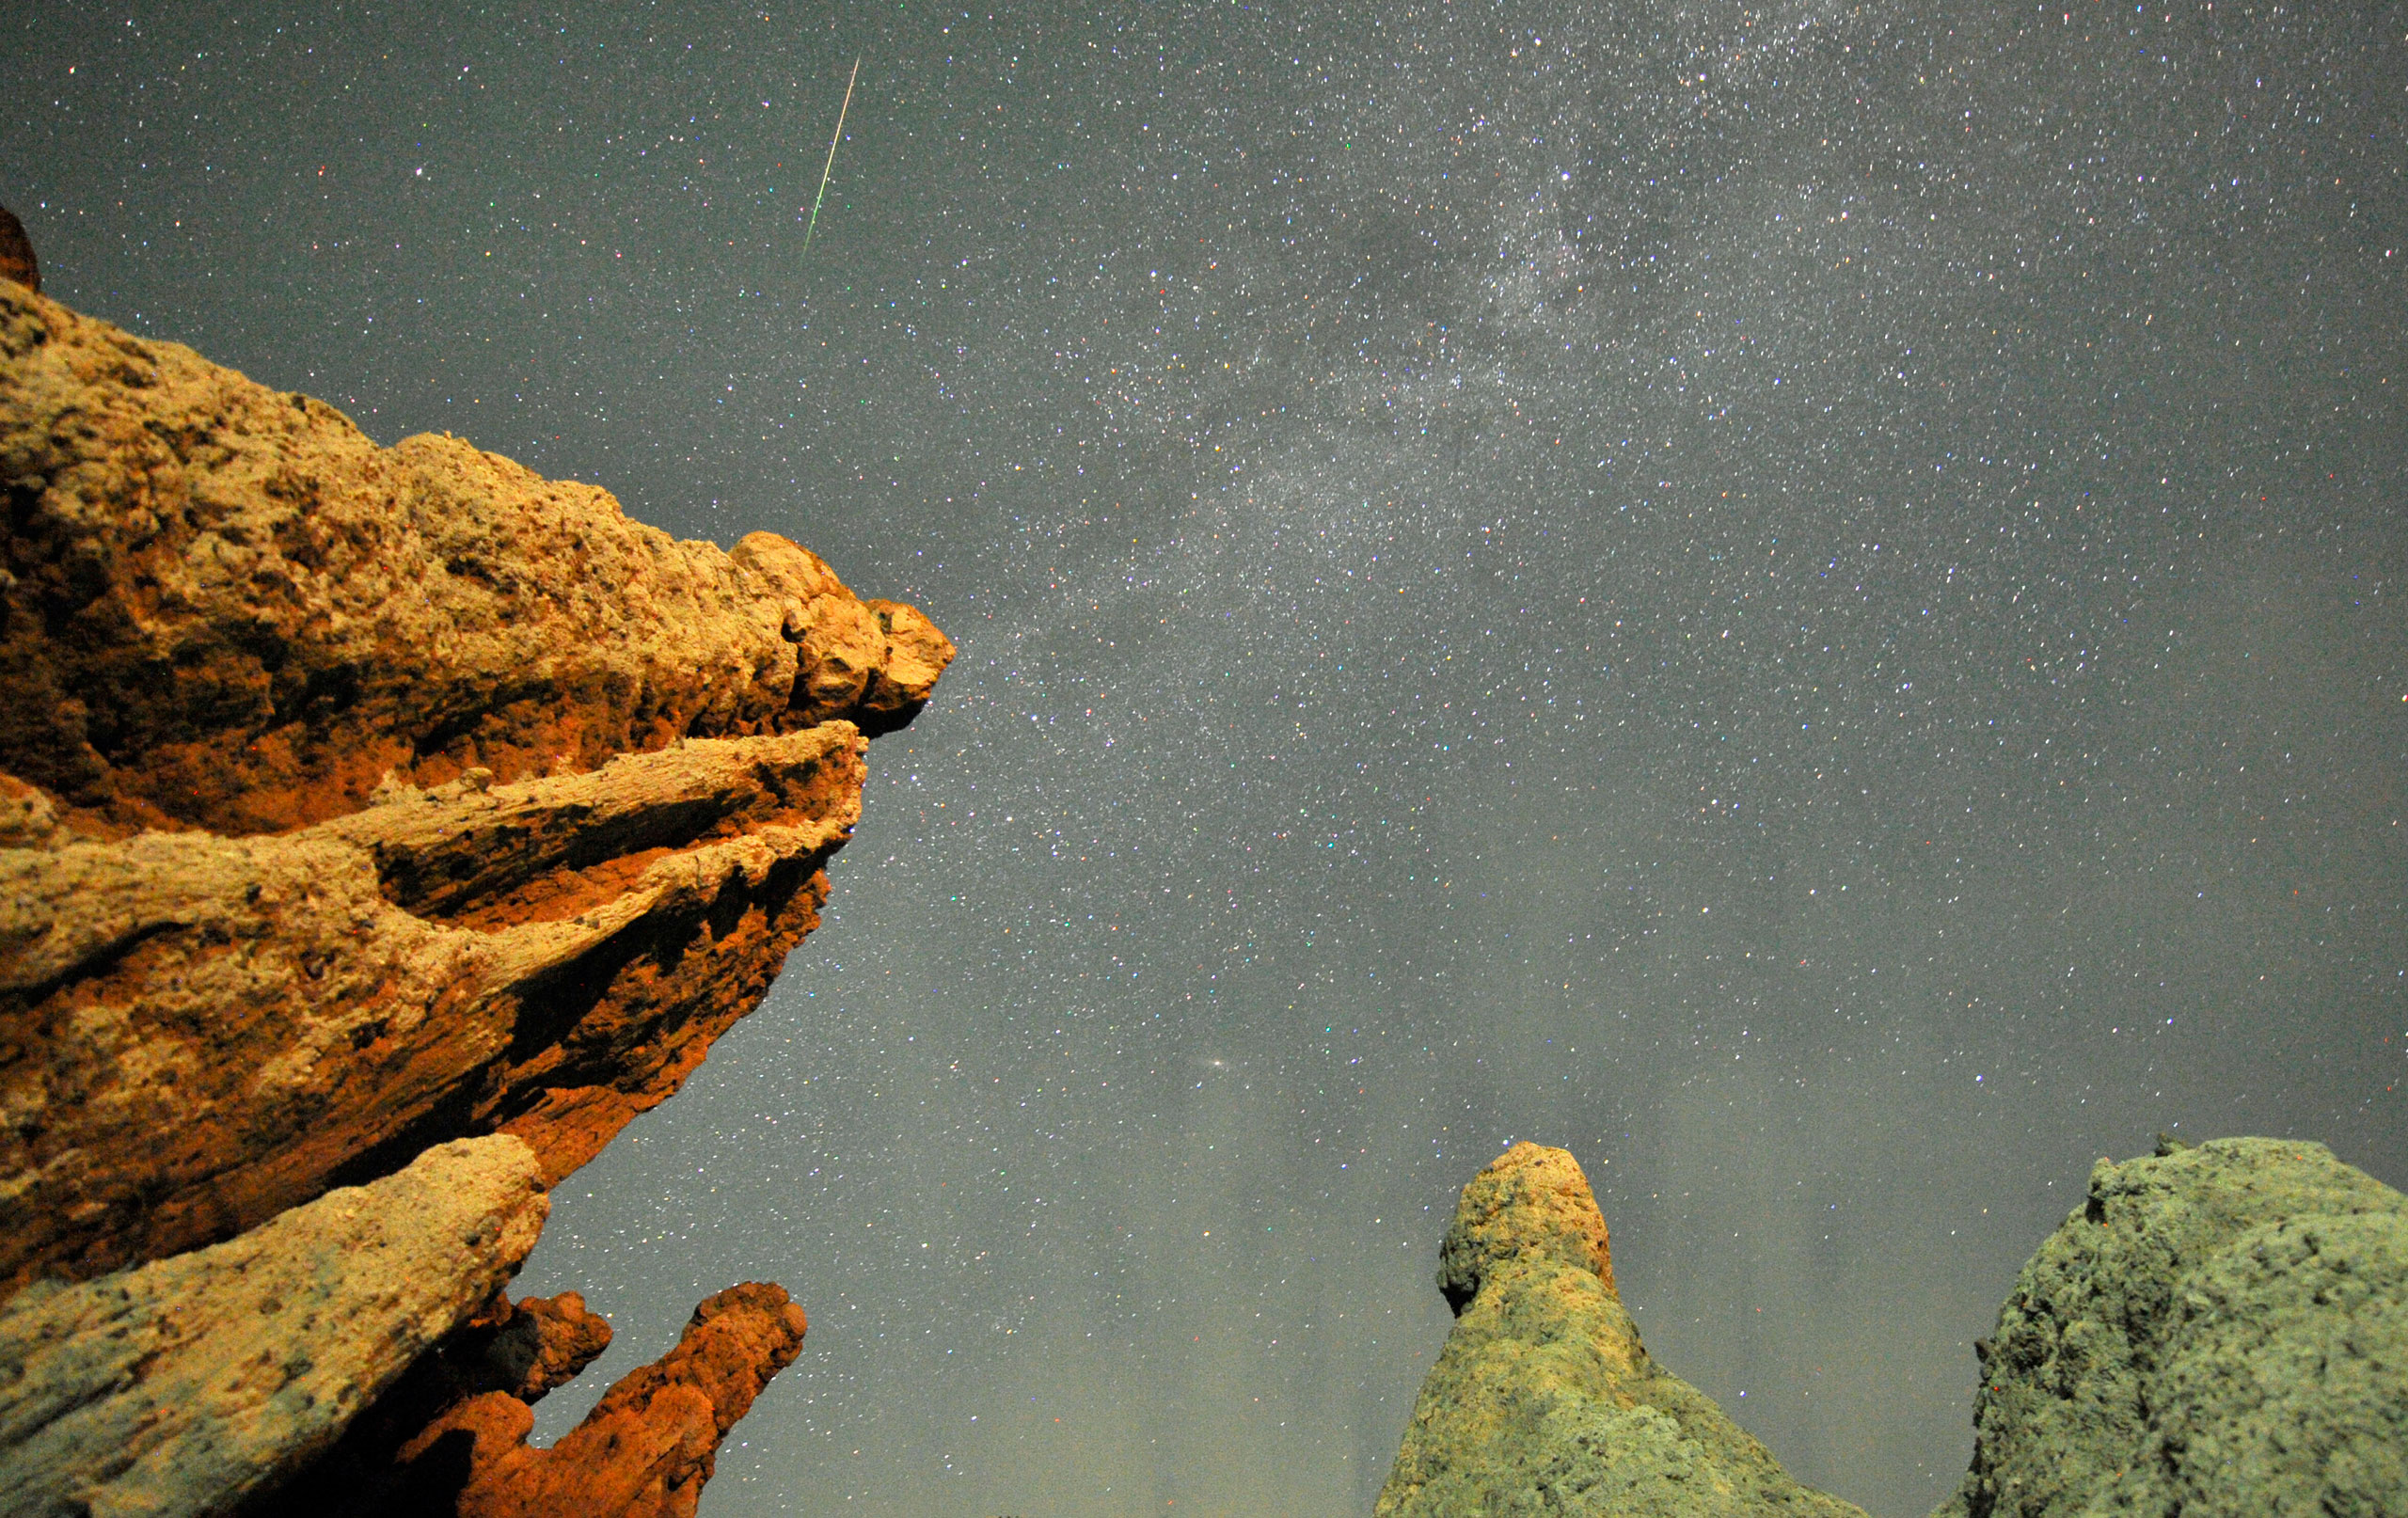 A Perseid meteor streaks past stars in the night sky over the village of Kuklici, known for its hundreds of naturally formed stones, near Kratovo, east of Skopje, on Aug. 13, 2012.